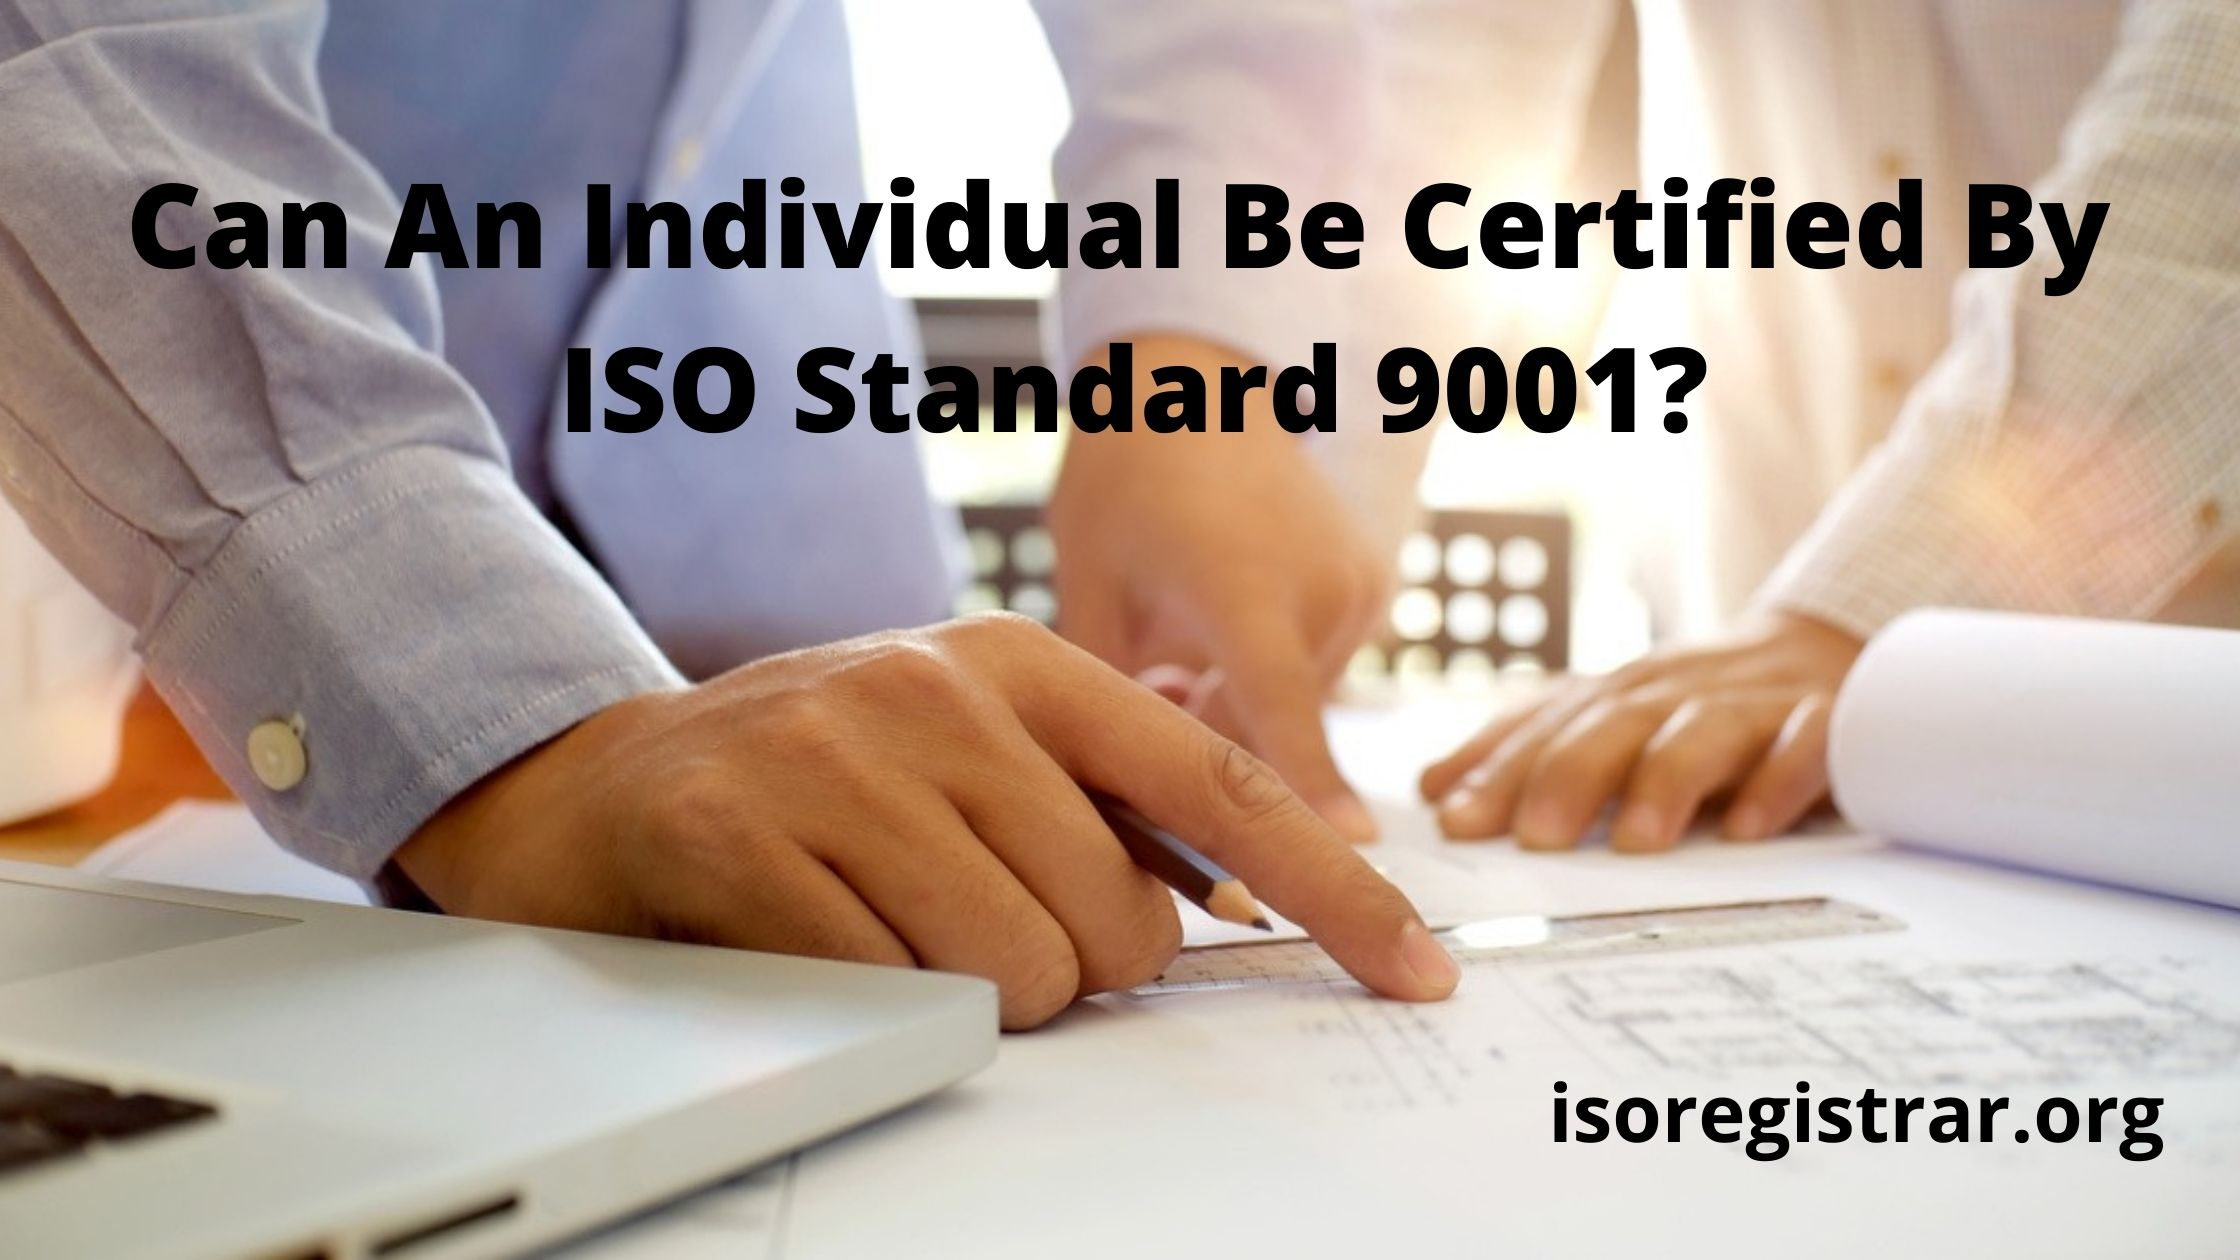 Can An Individual be Certified by ISO Standard 9001?